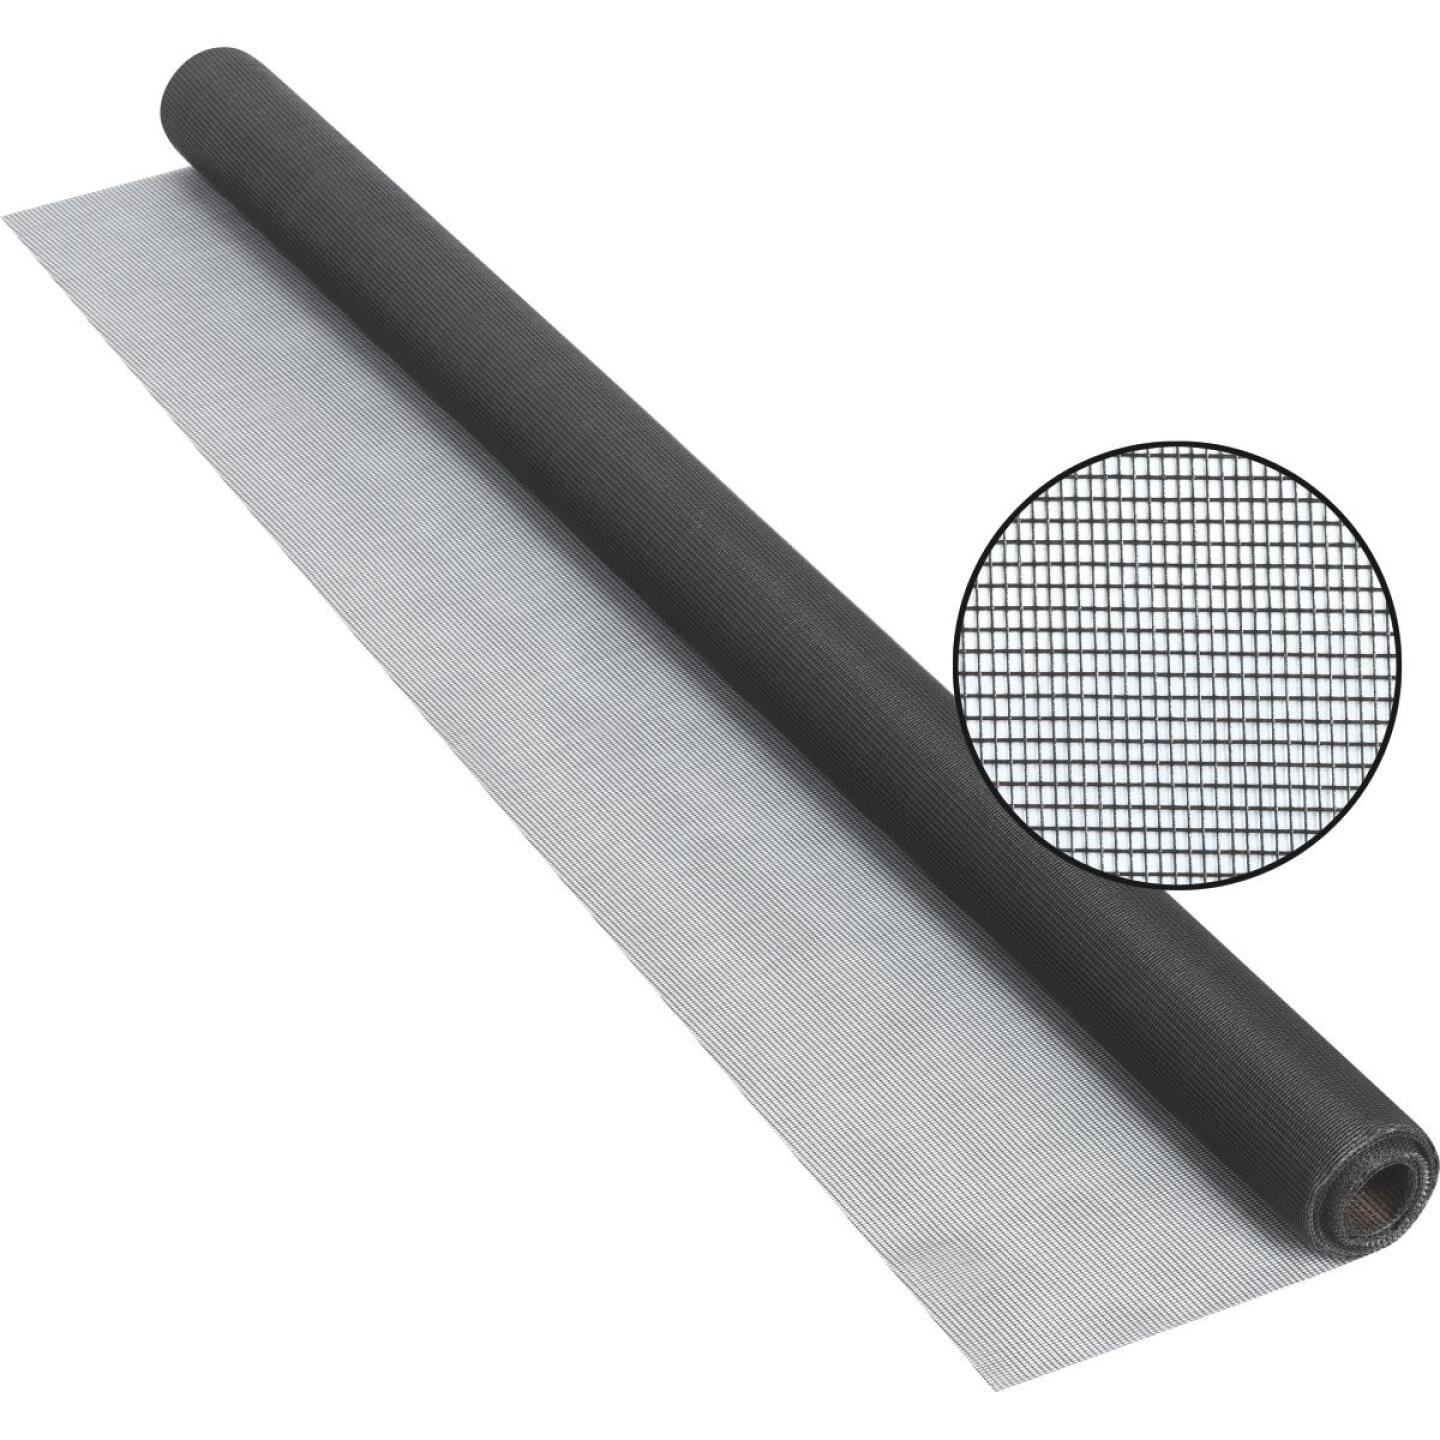 Phifer 36 In. x 25 Ft. Charcoal Fiberglass Screen Cloth Image 1